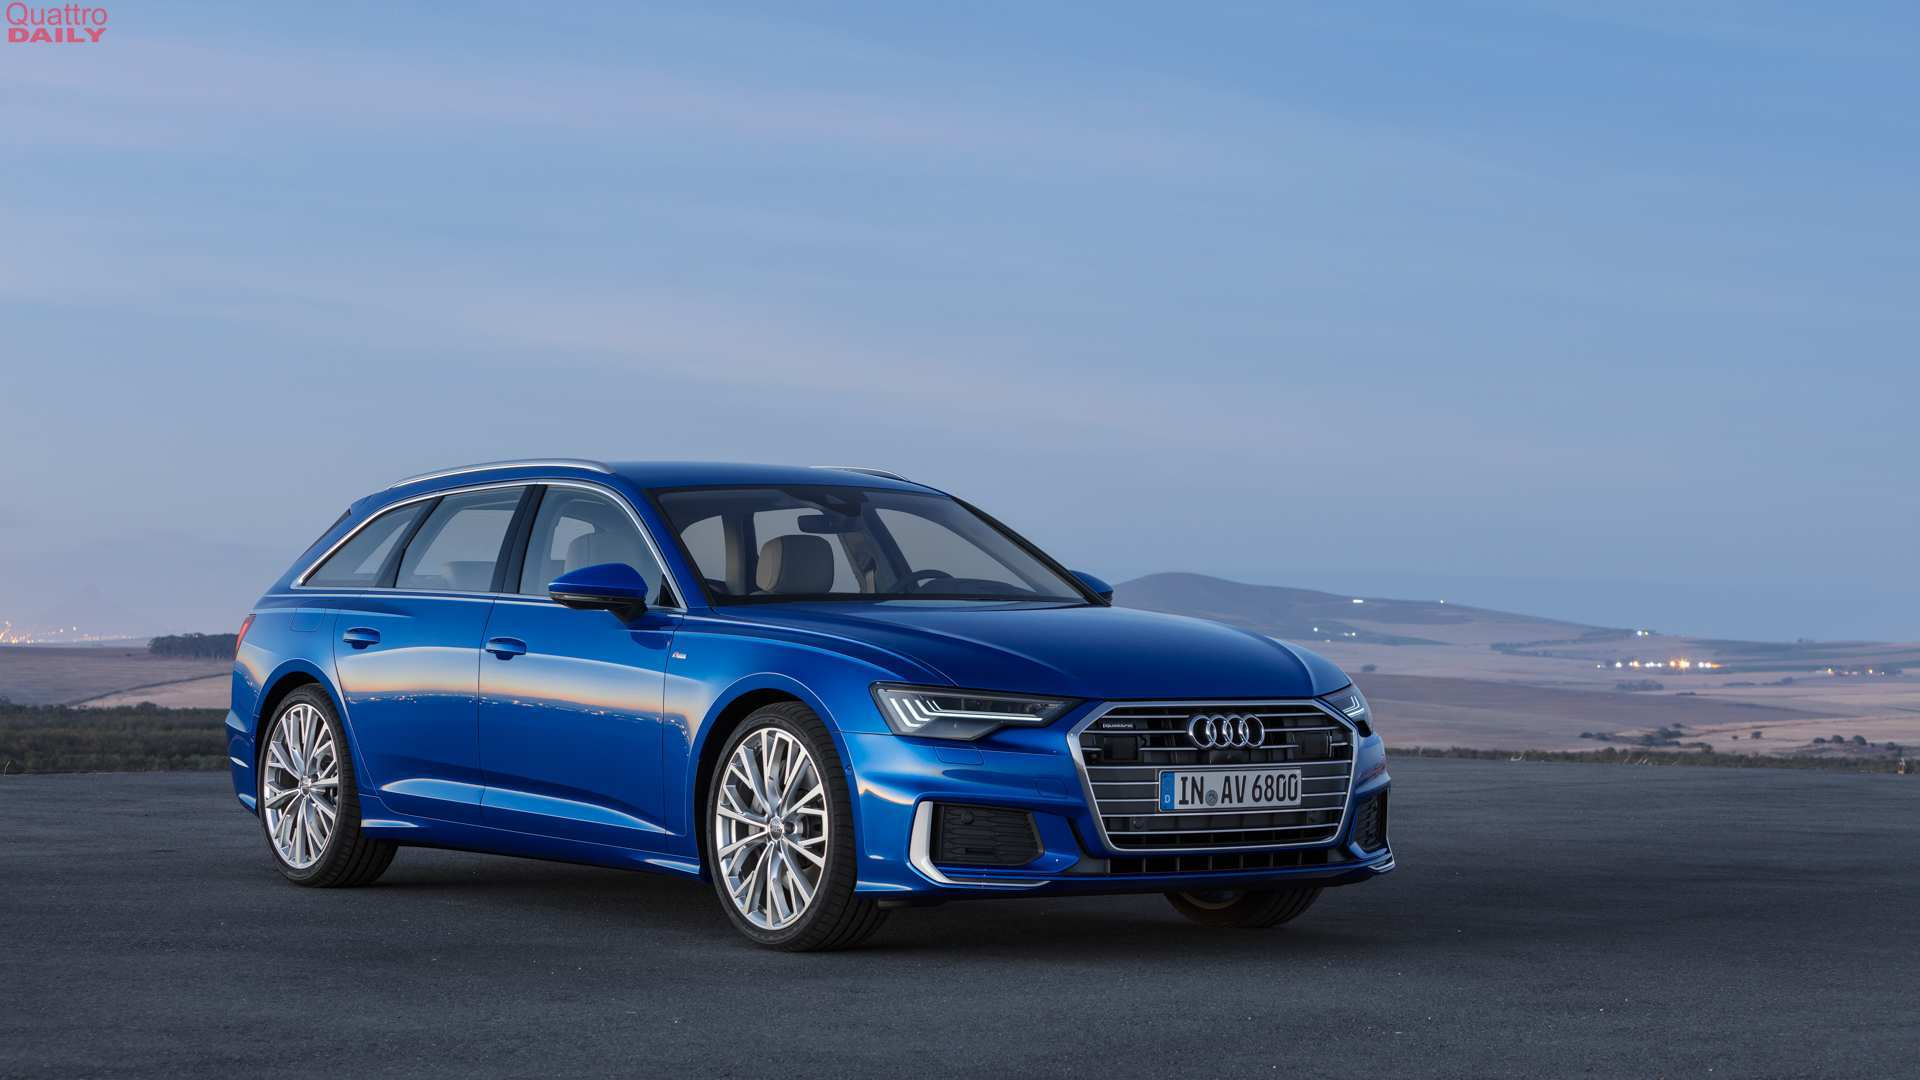 80 Great 2020 Audi Rs6 Avant Usa Exterior for 2020 Audi Rs6 Avant Usa